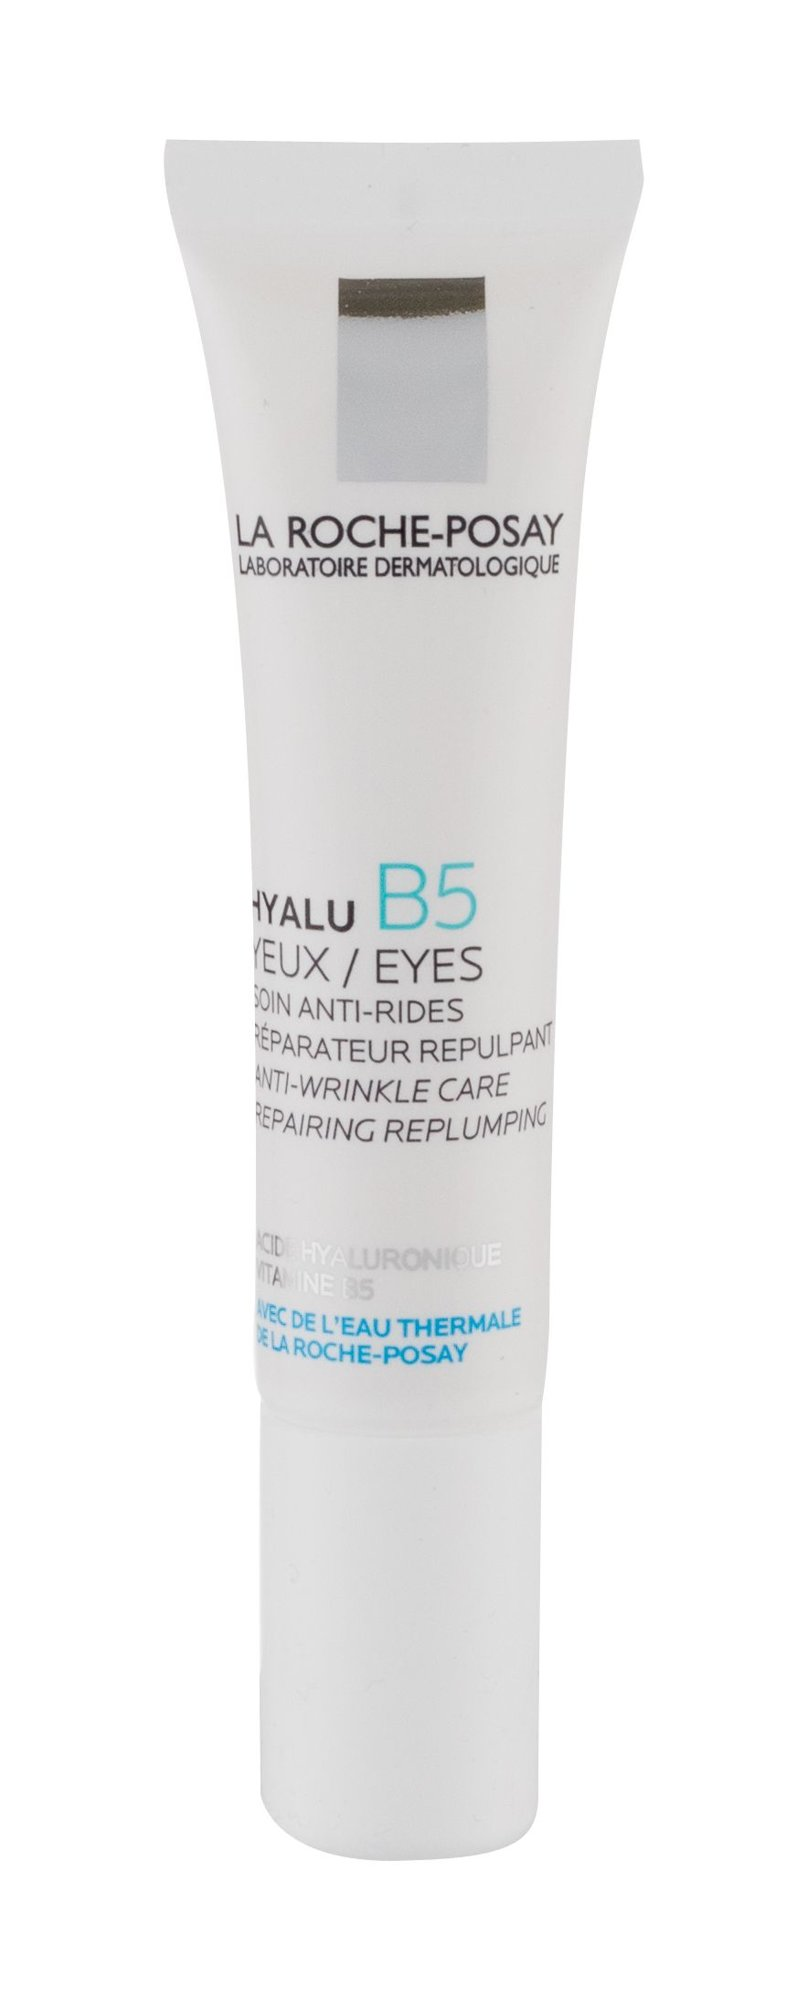 La Roche-Posay Hyalu B5 Eye Cream 15ml